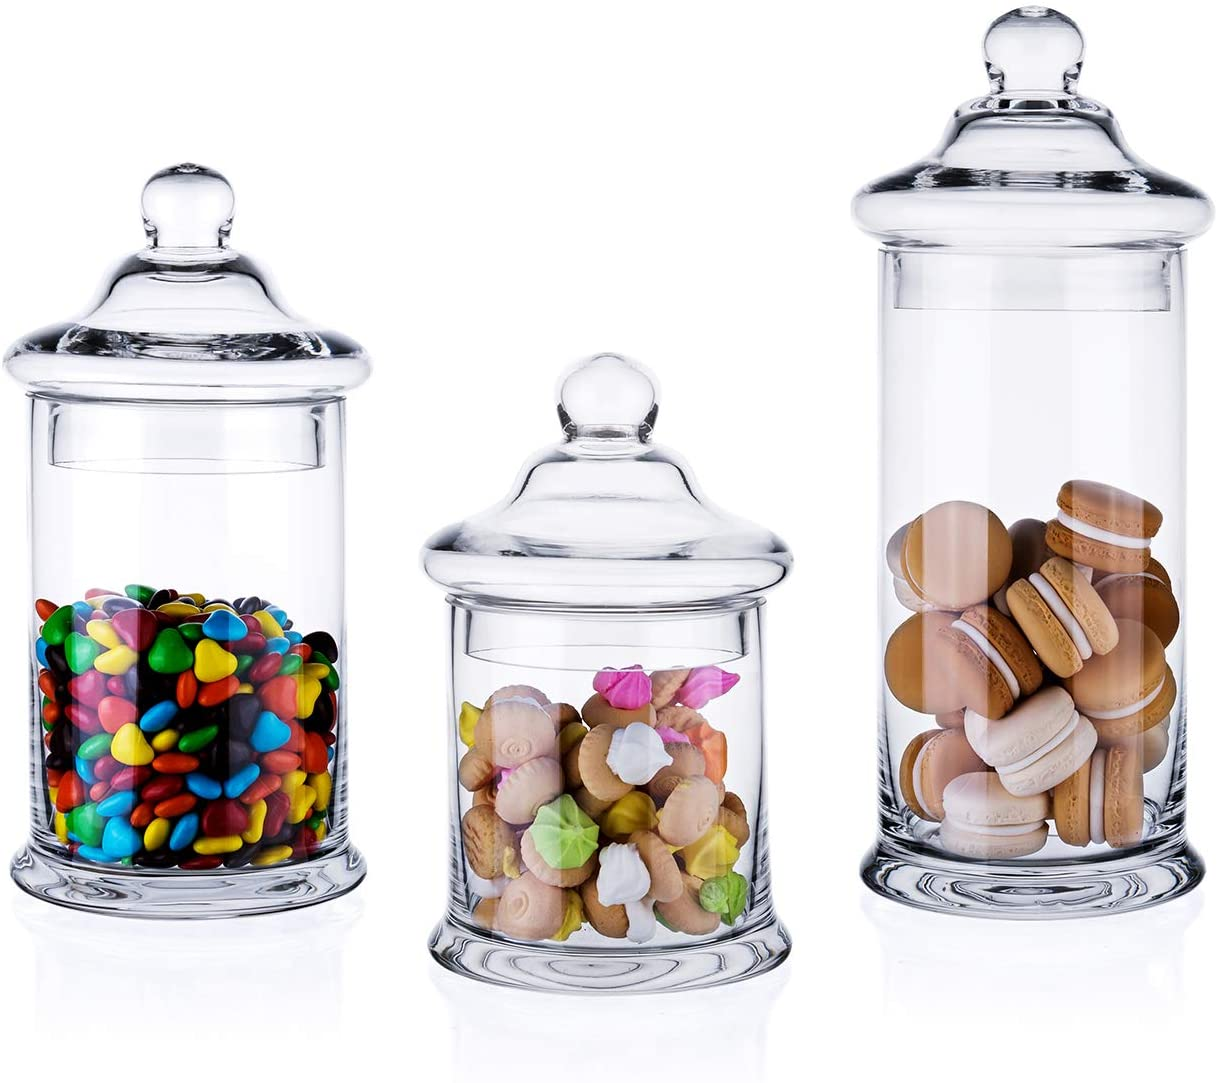 "Diamond Star Set of 3 Clear Glass Apothecary Jars Elegant Storage Jar with Lid, Decorative Wedding Candy Organizer Canisters Home Decor Centerpieces (H: 11"", 8.5"", 7.5"" D: 5"")"